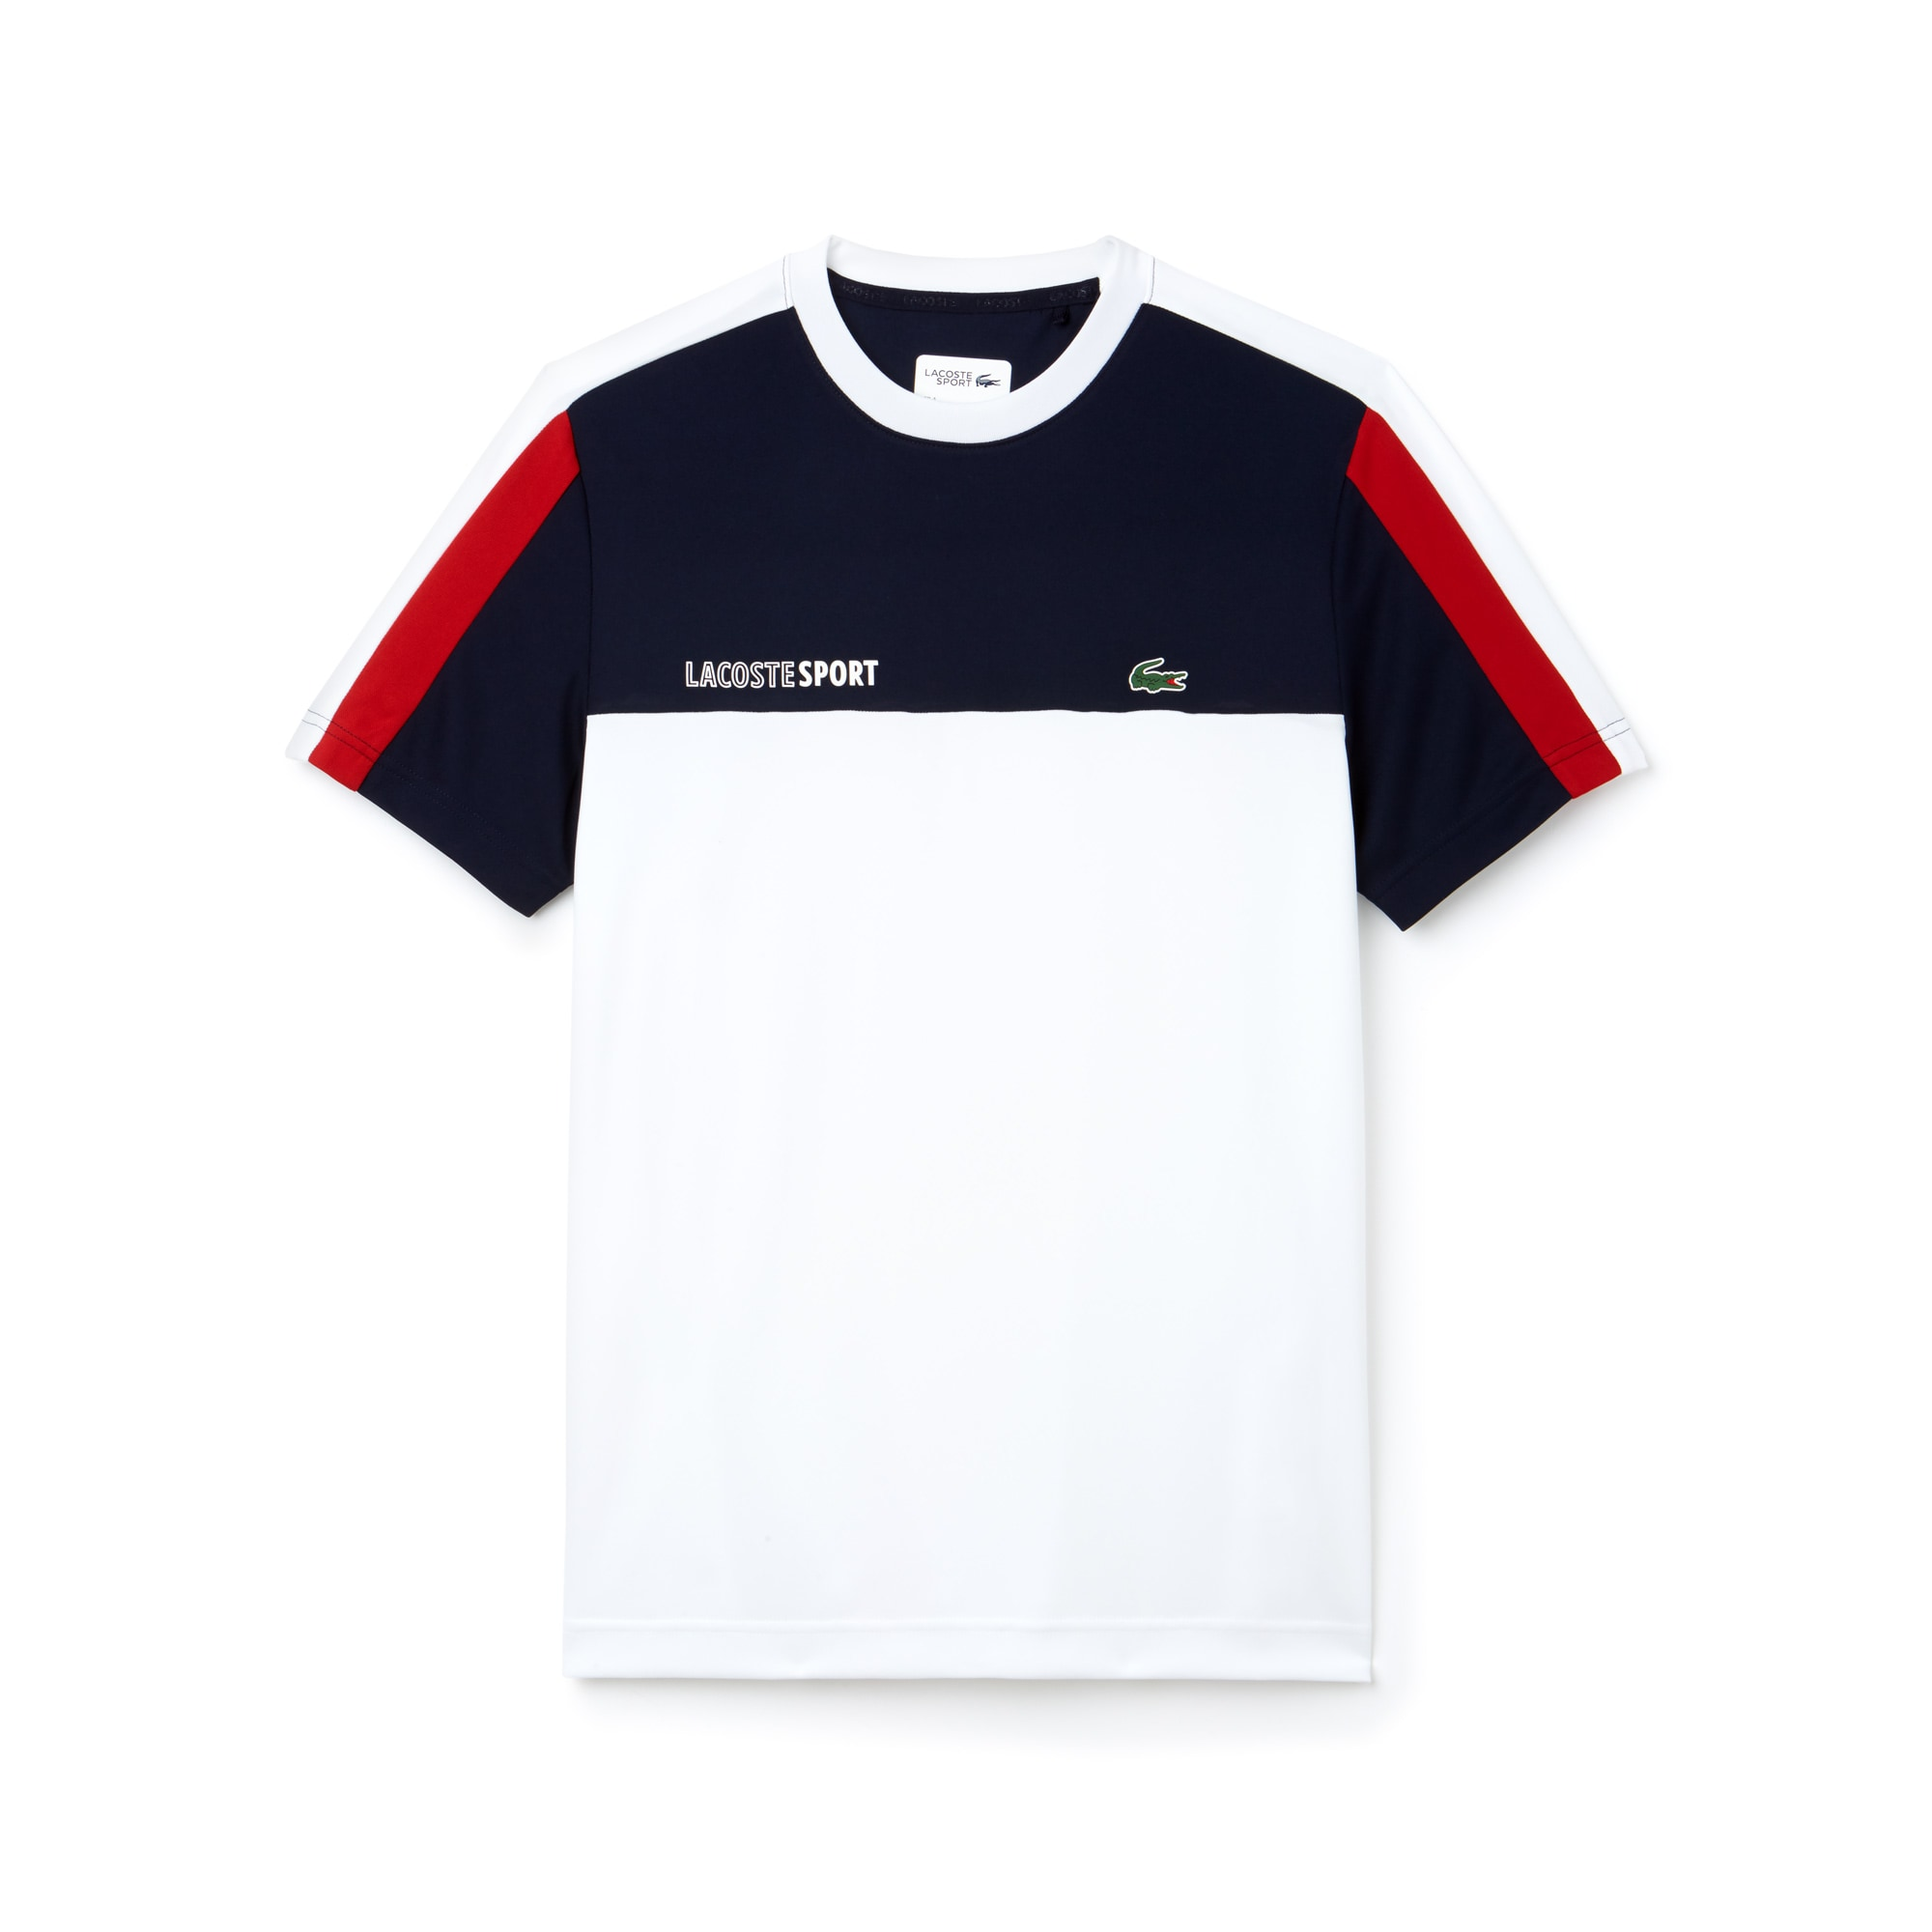 Tee Shirt Lacoste Sport Homme